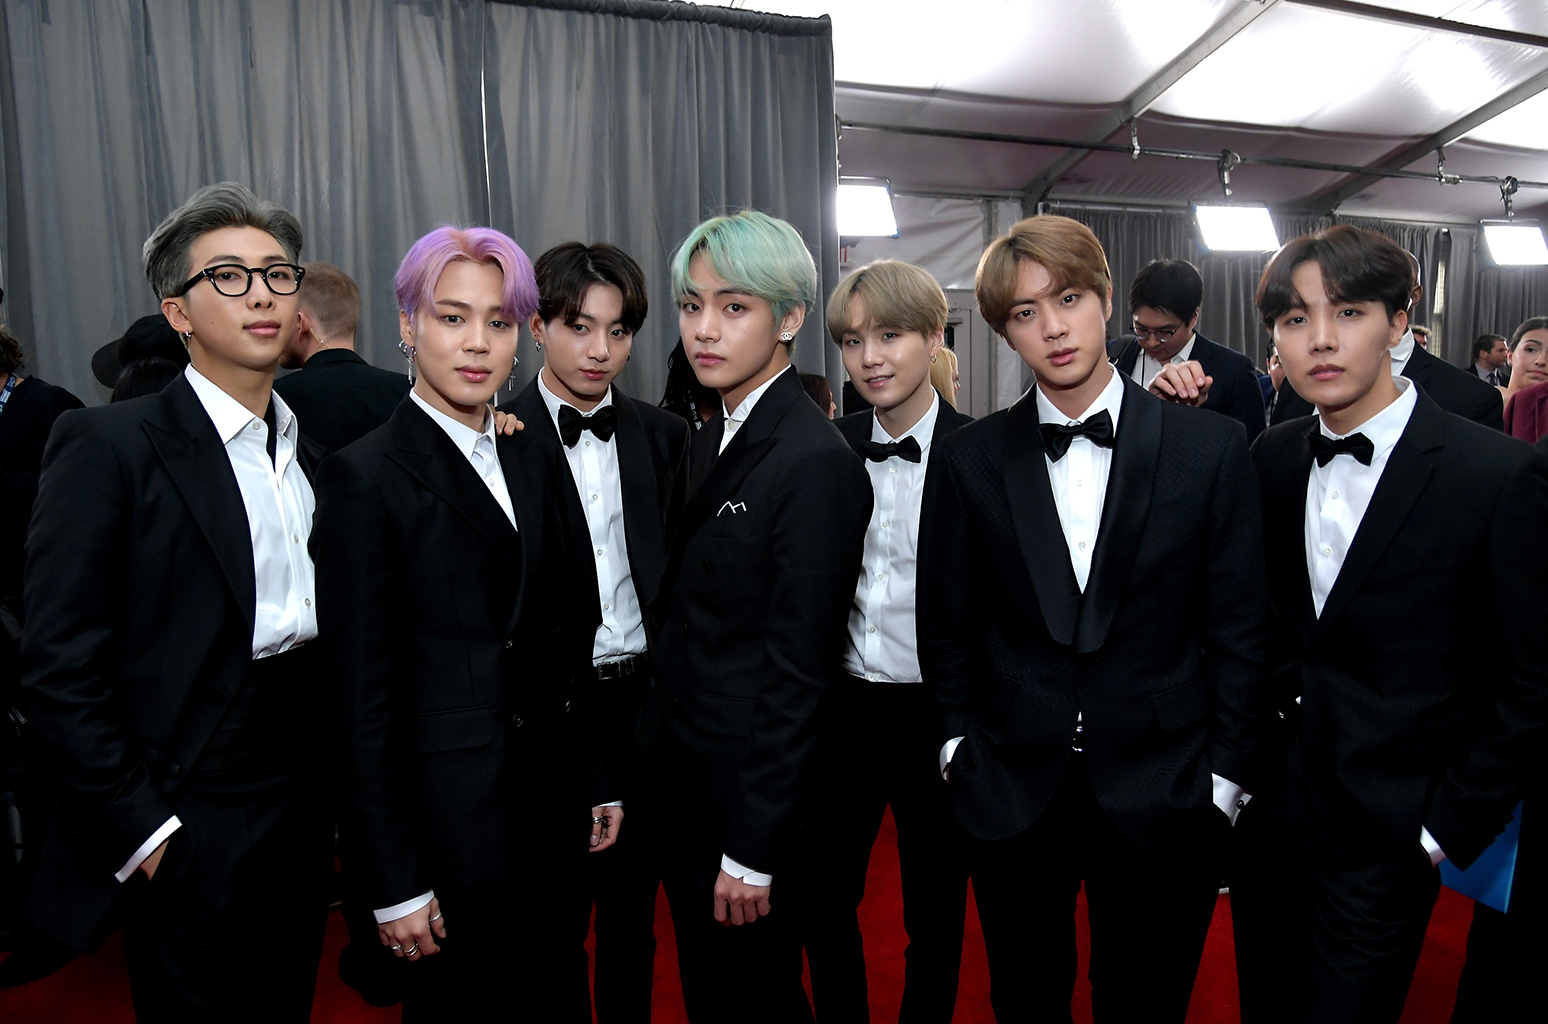 BTS At The 2019 Grammys Red Carpet See The Photos Billboard 1548x1024